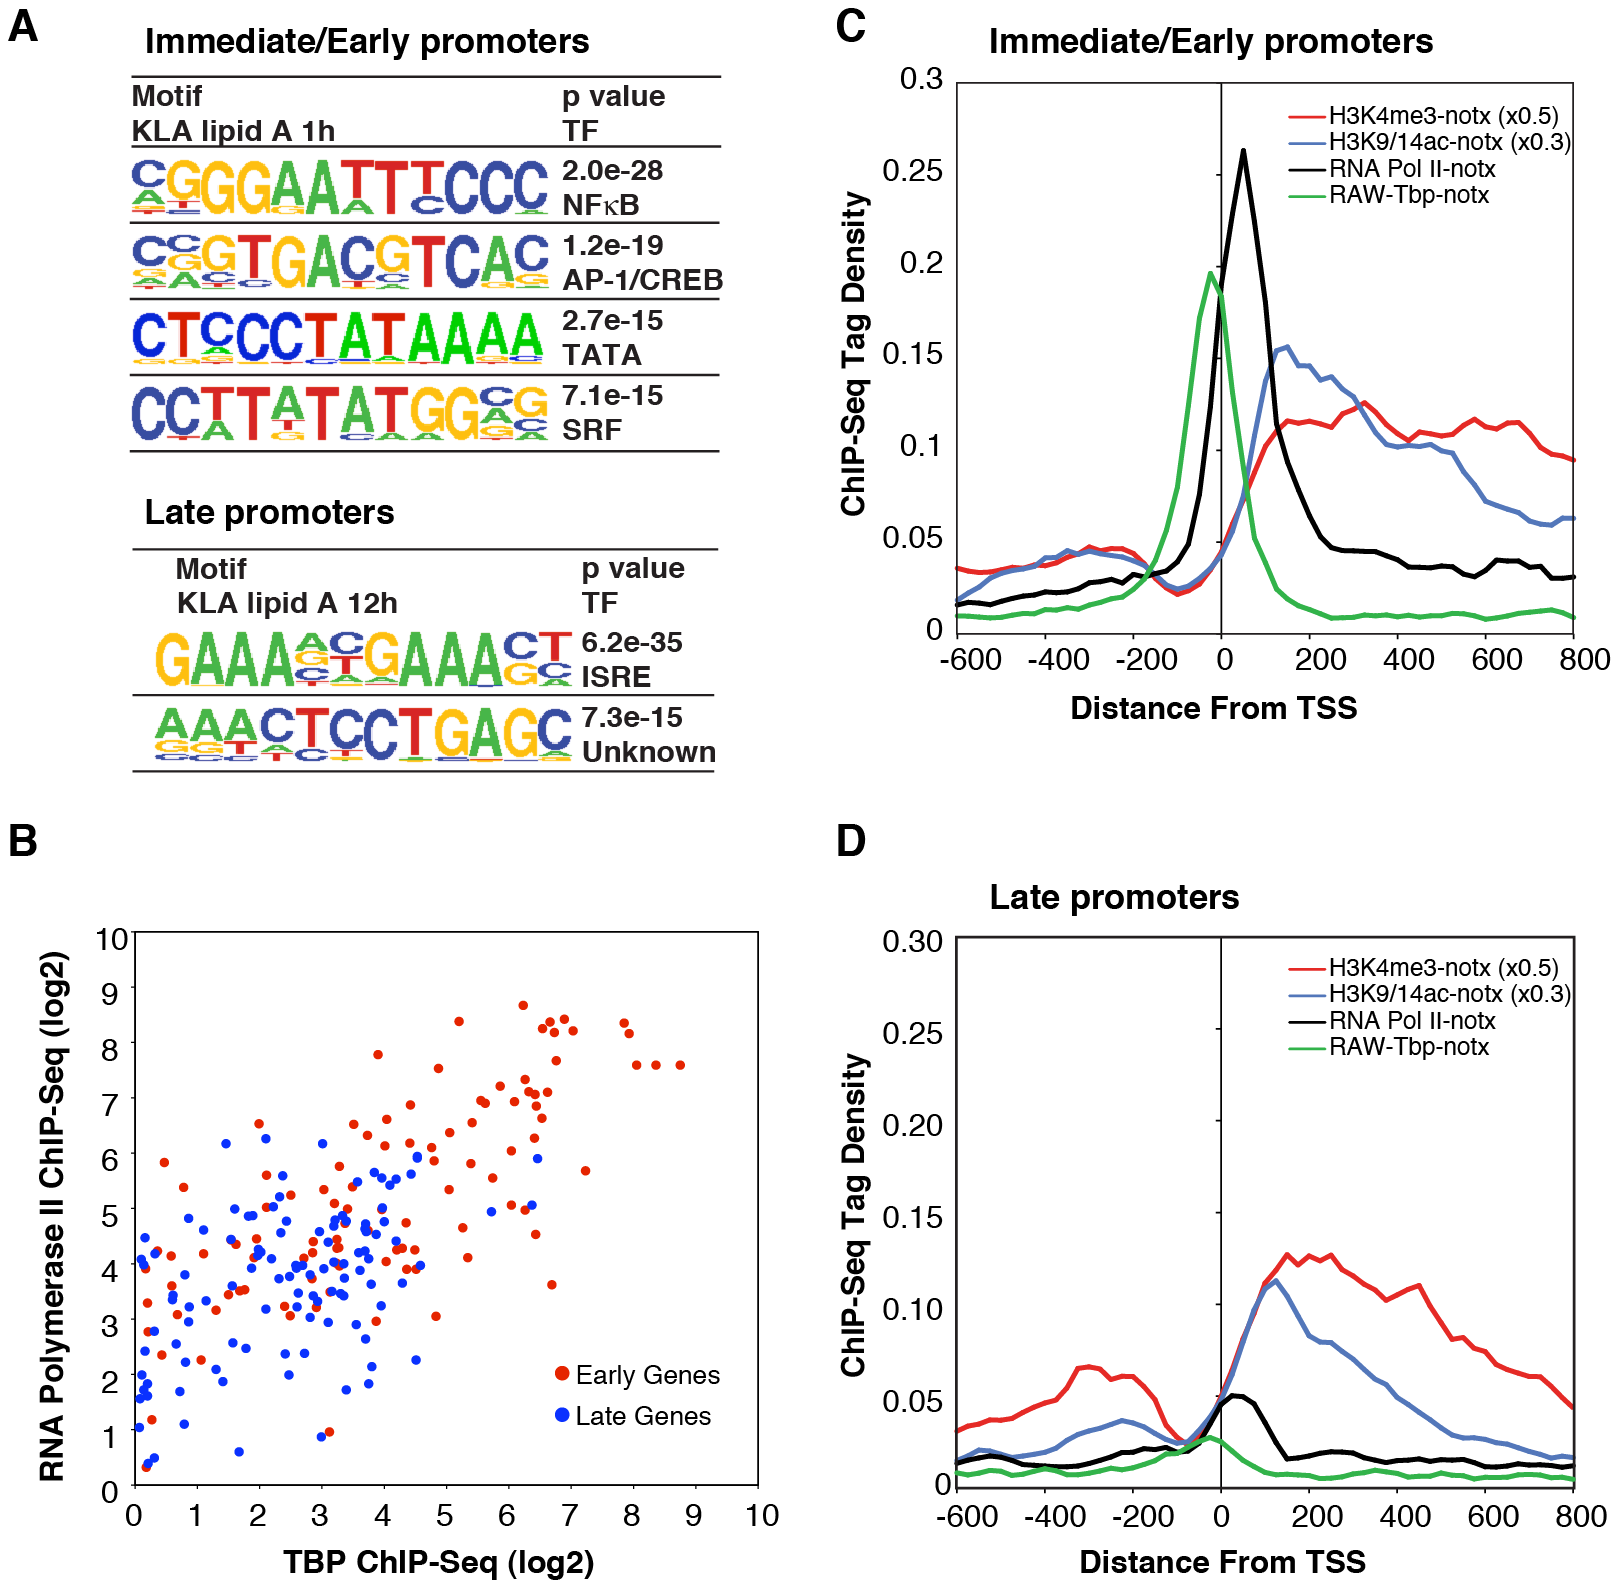 Differential use of signal-dependent transcription factors and TBP in I/E and late promoters.